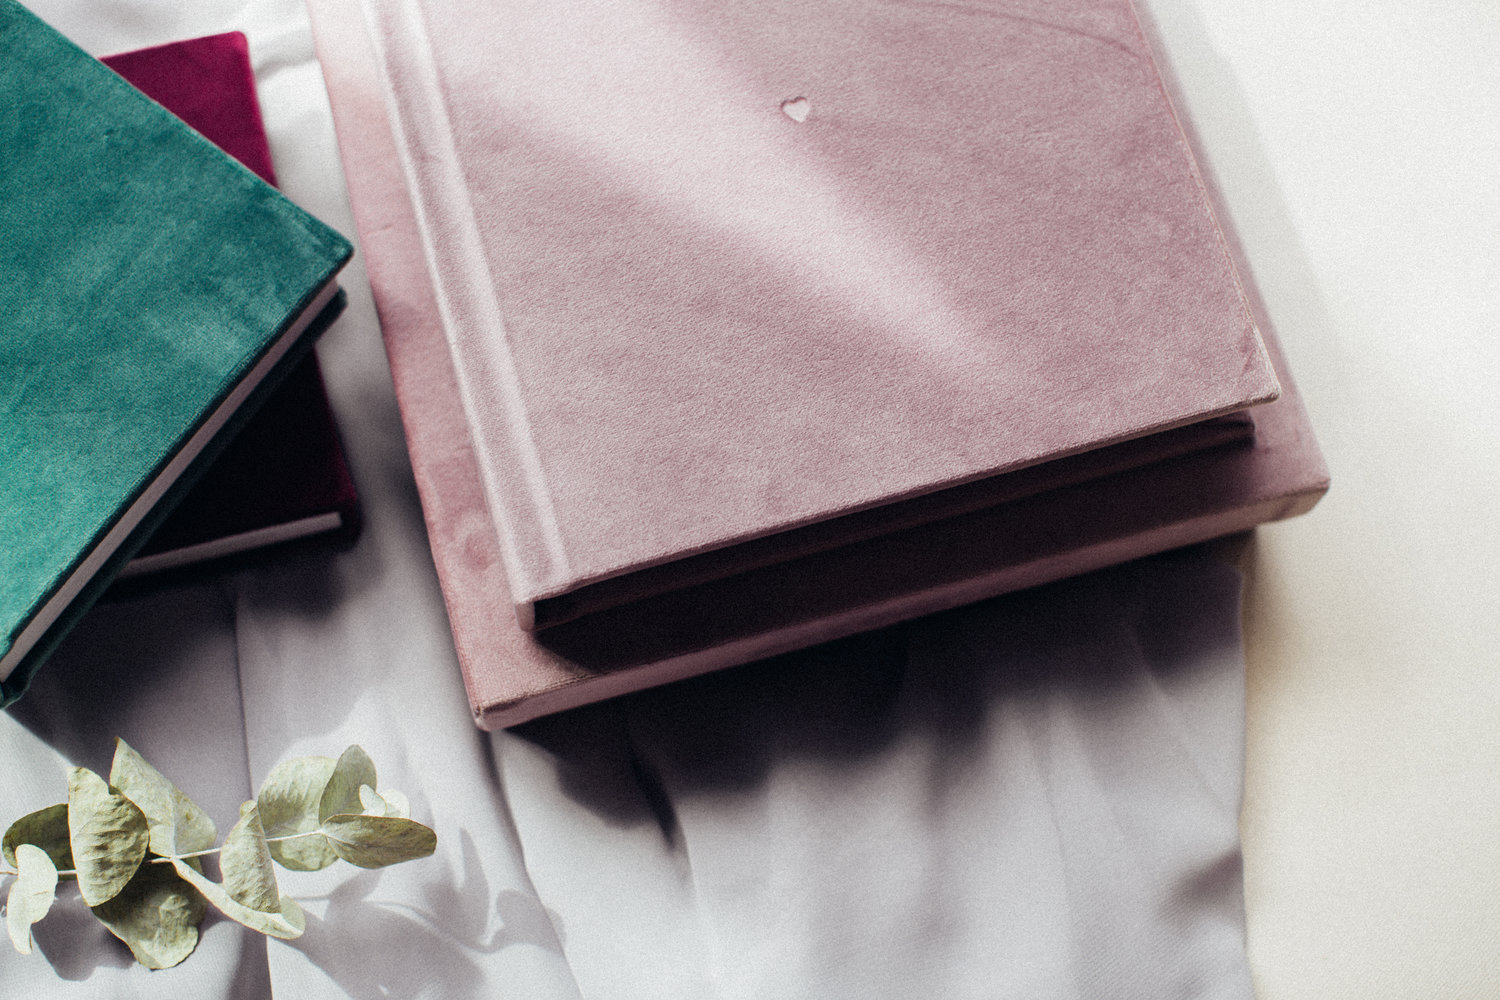 wedding album tips 4 image